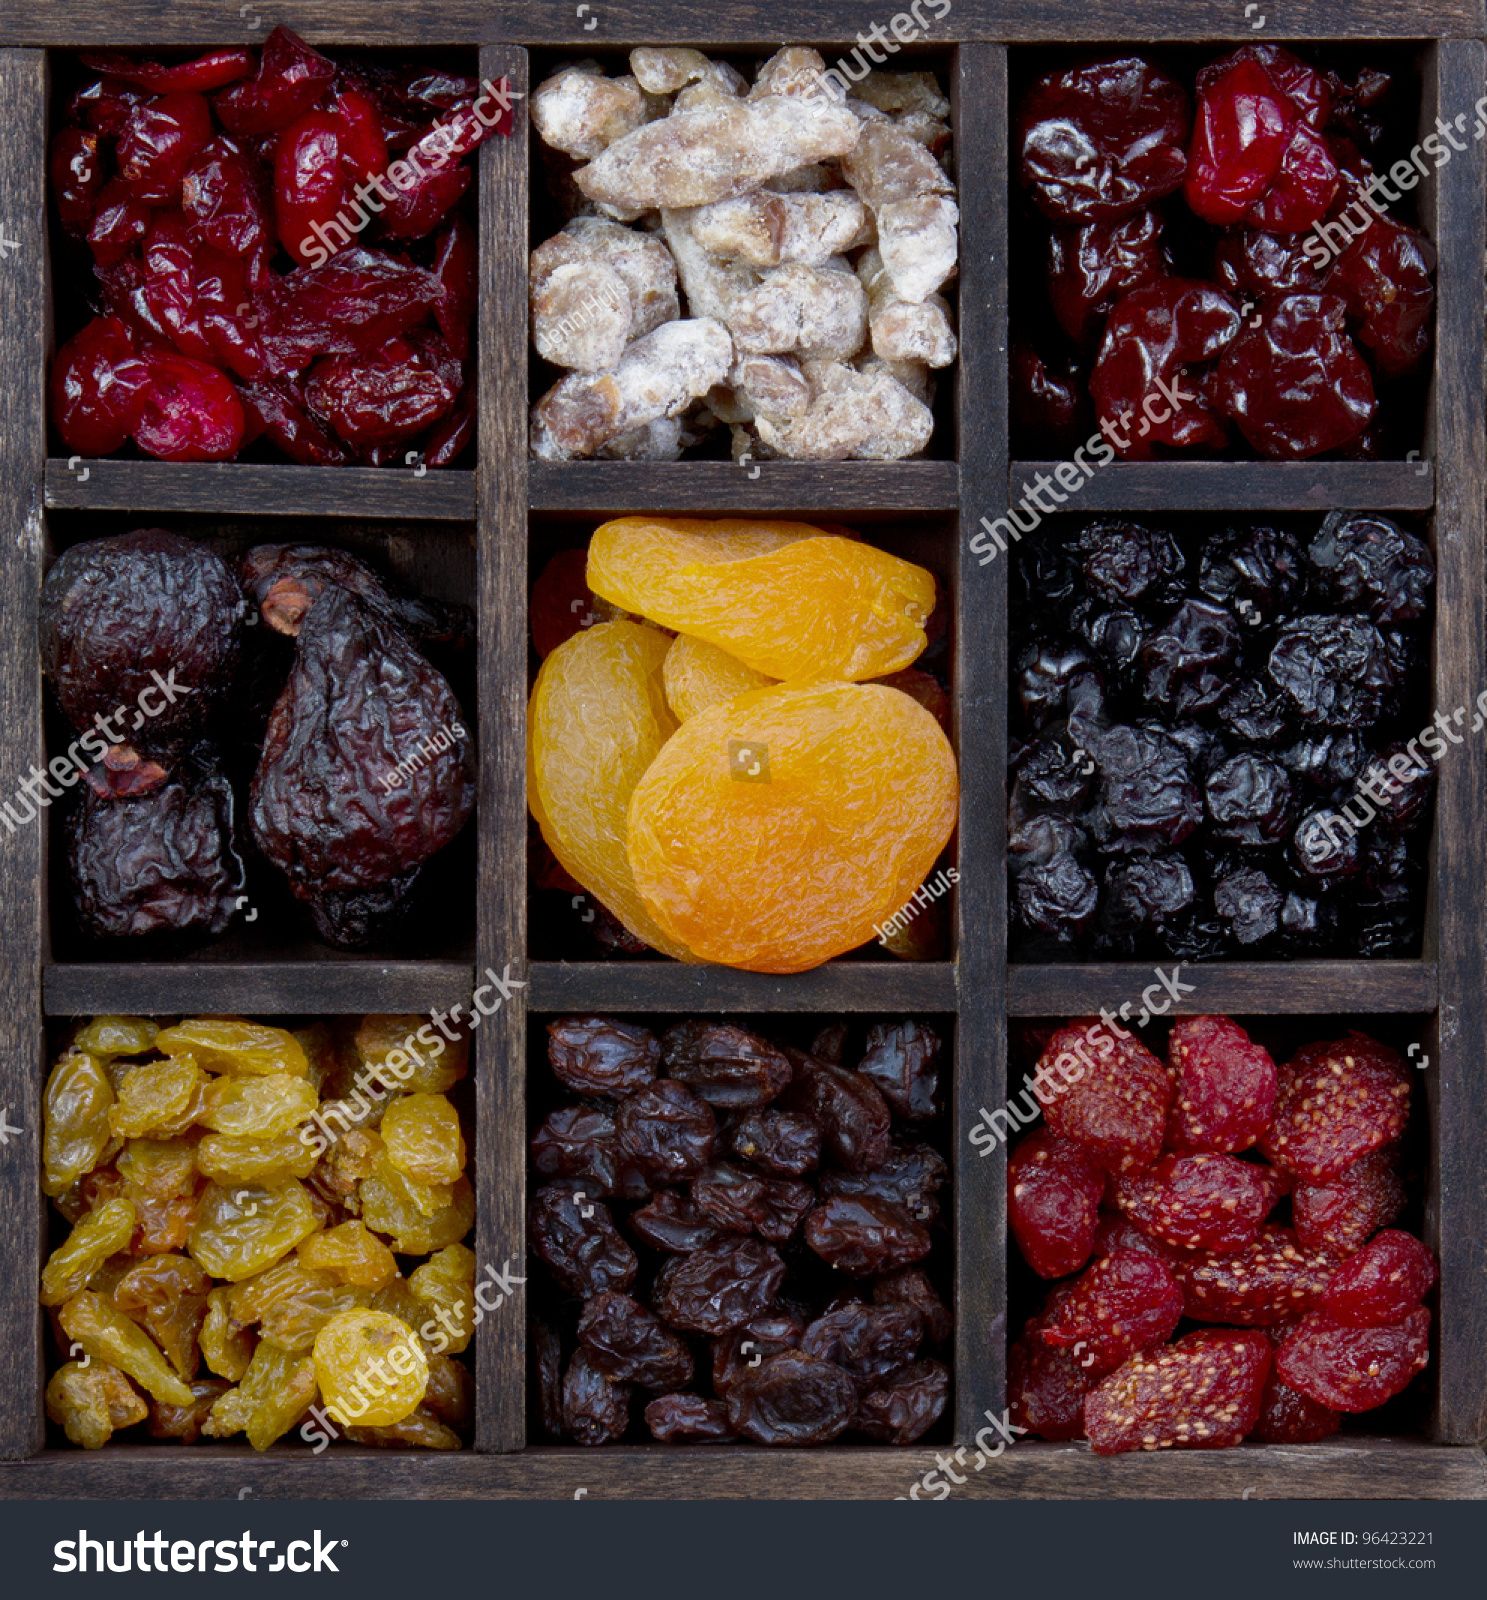 dried-fruit-in-a-printers-box-figs-cherries-raisins-strawberries-figs ...